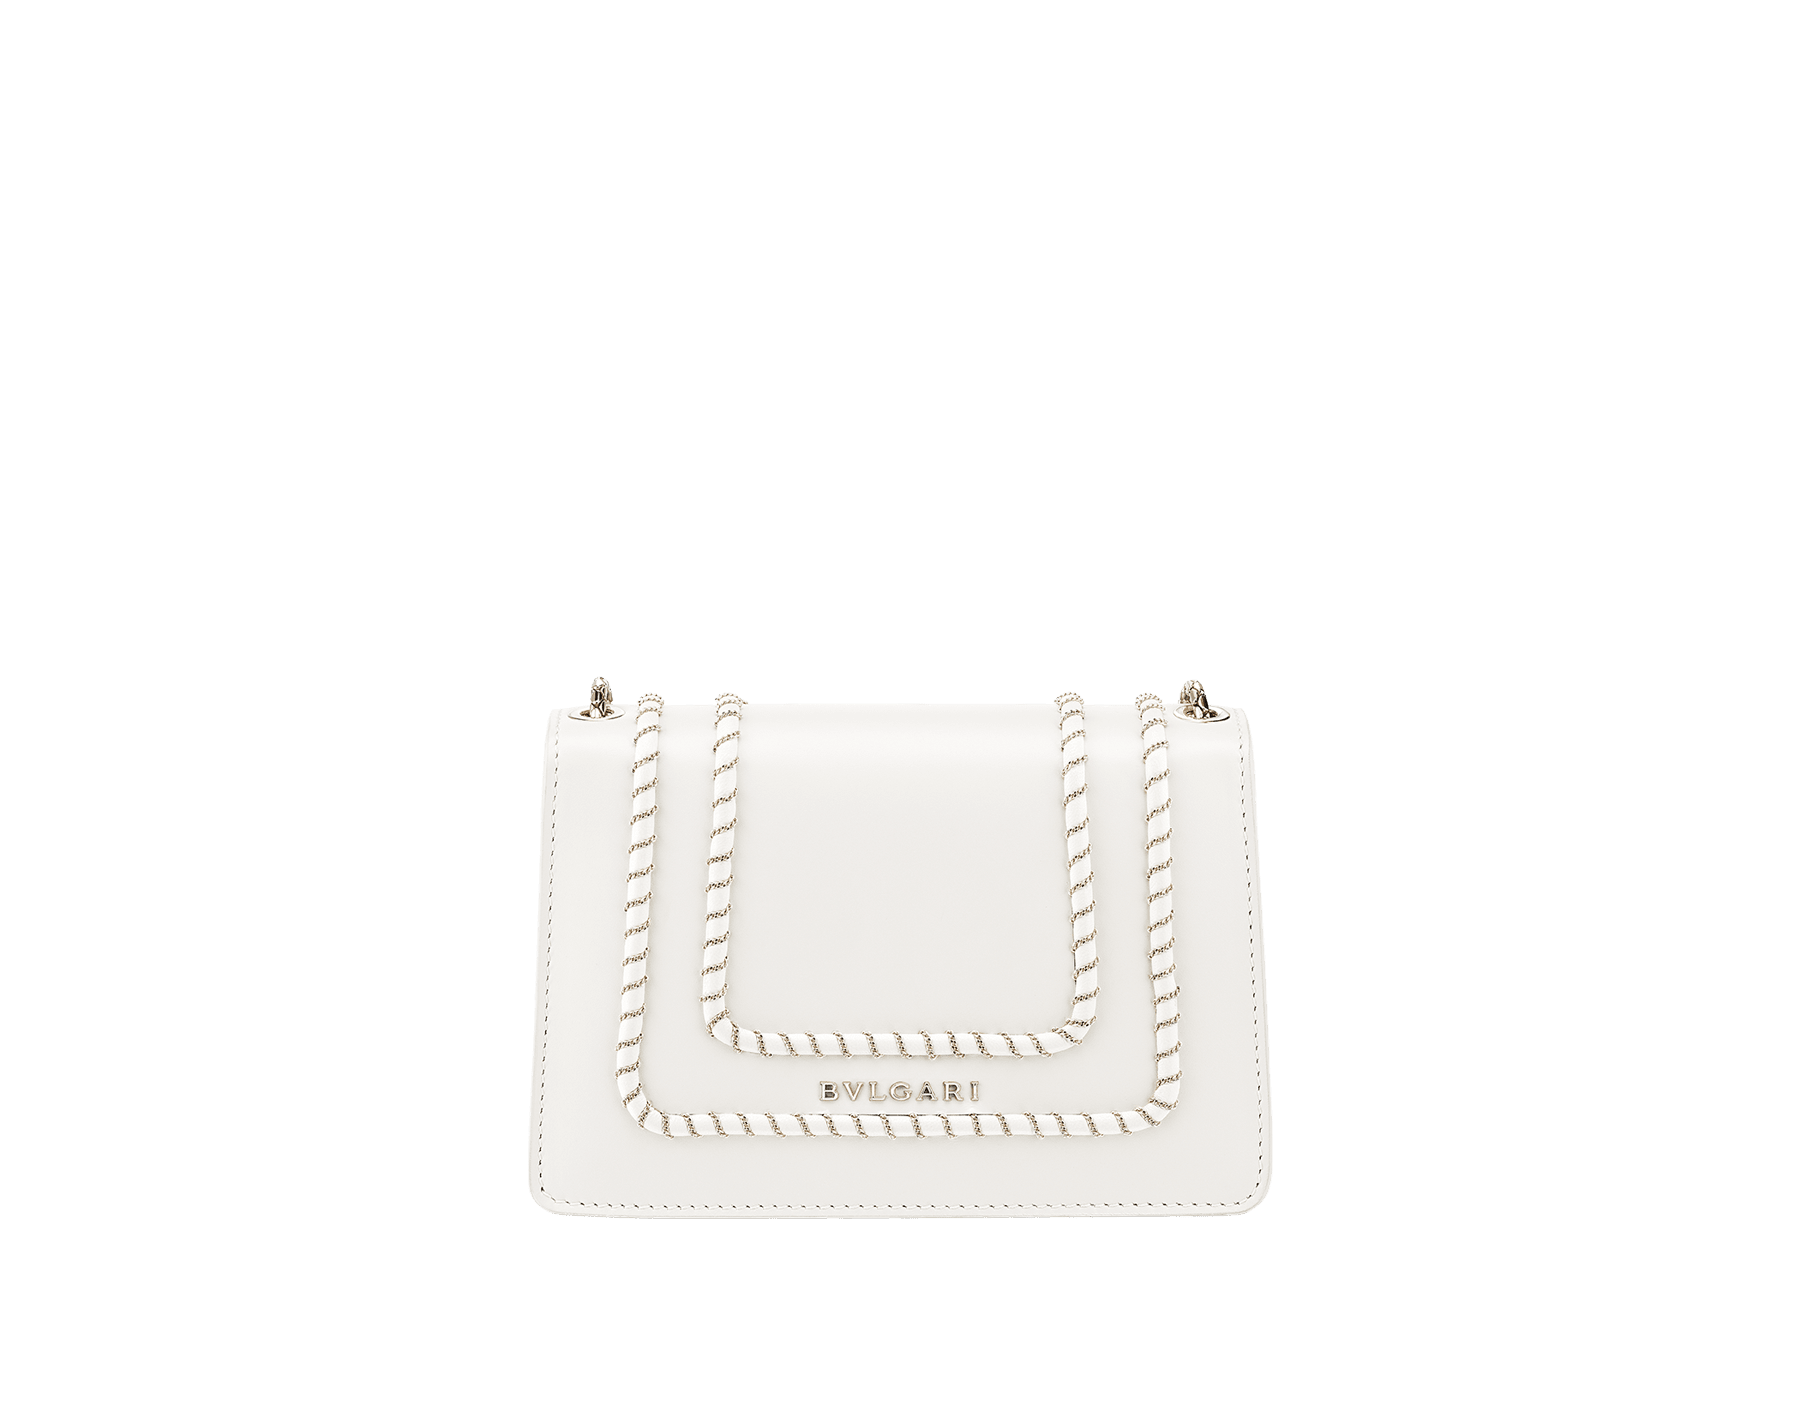 Serpenti Forever mini crossbody bag in white agate calf leather with woven chain décor. Brass light gold-plated snake head closure in black and white enamel, with black onyx eyes. 288045 image 3